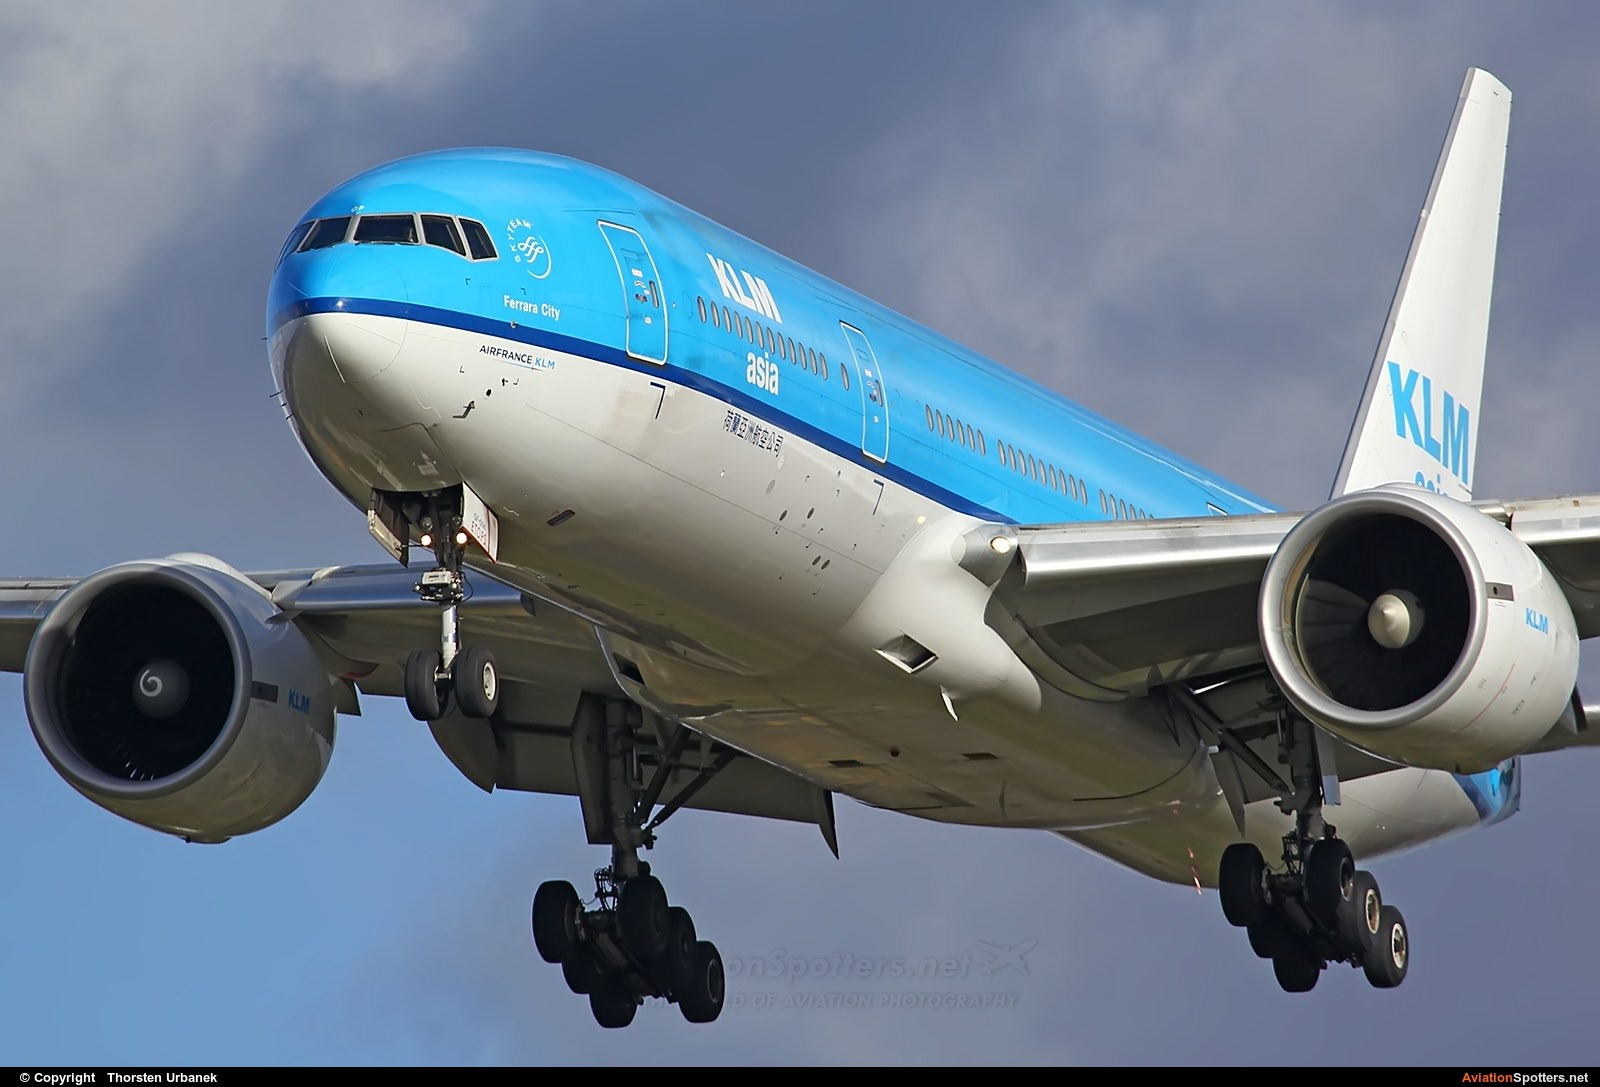 KLM  -  777-200ER  (PH-BQF) By Thorsten Urbanek (toto1973)